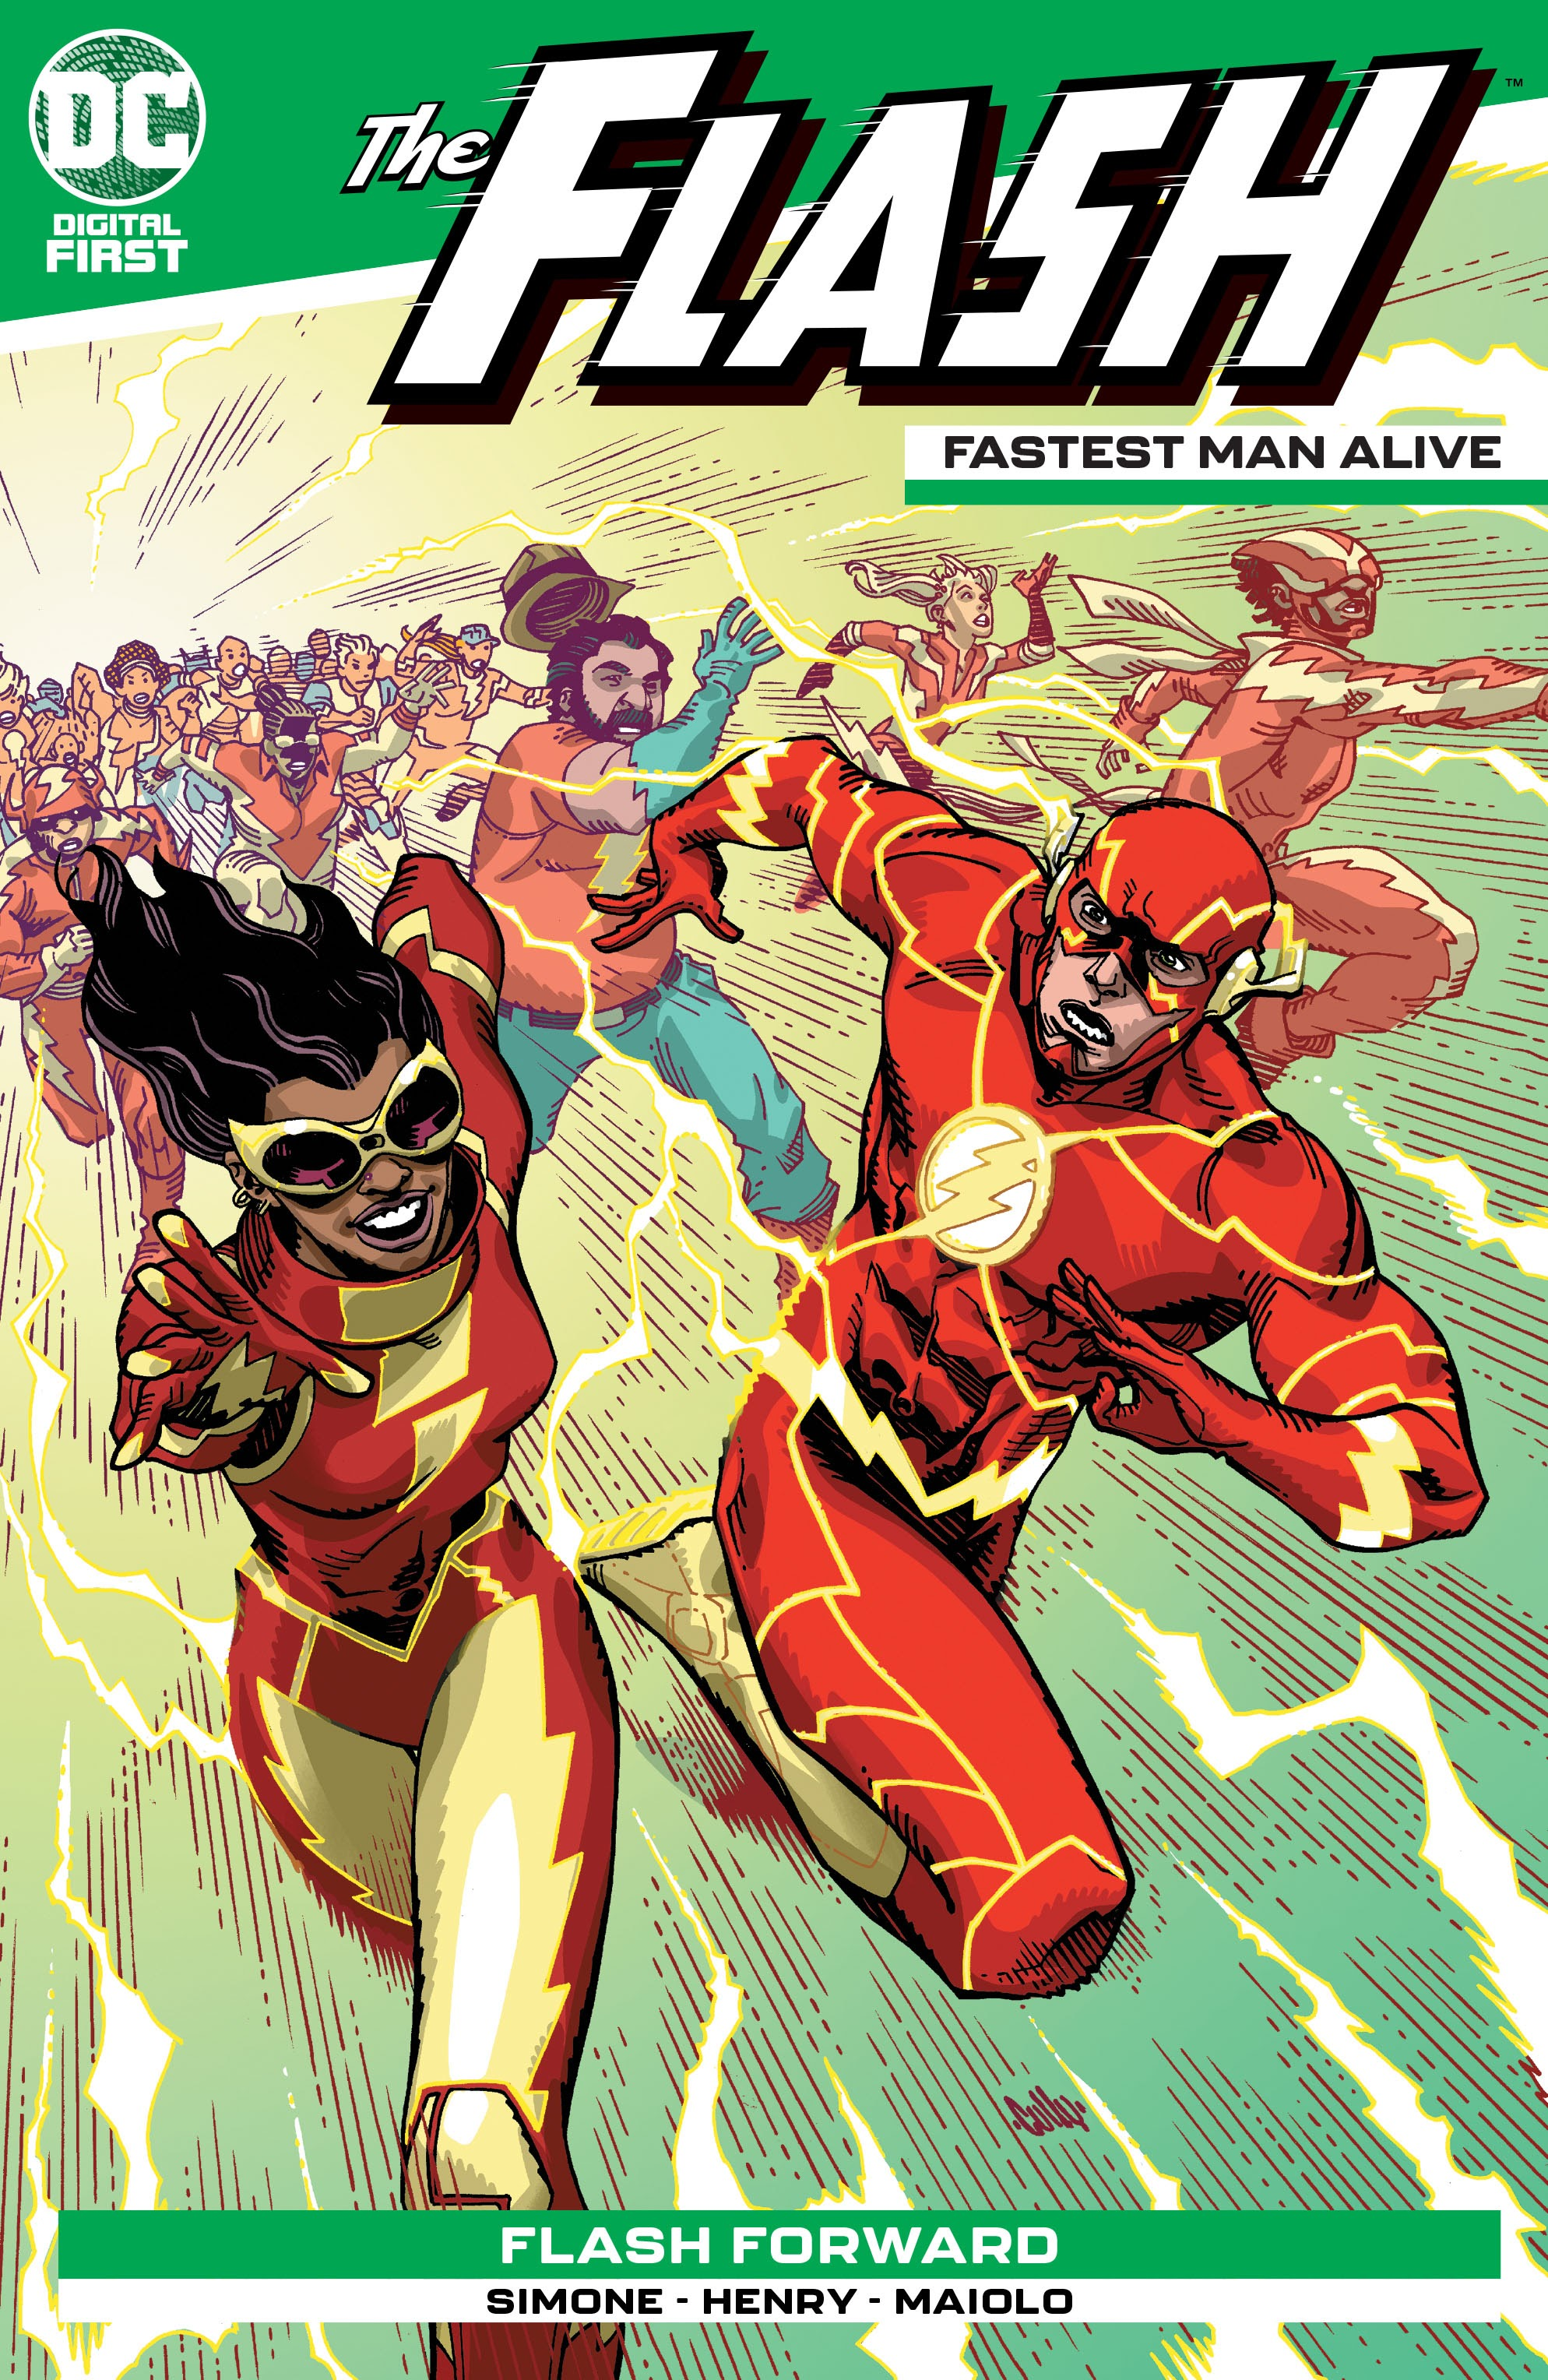 The Flash: Fastest Man Alive Vol 1 4 (Digital)